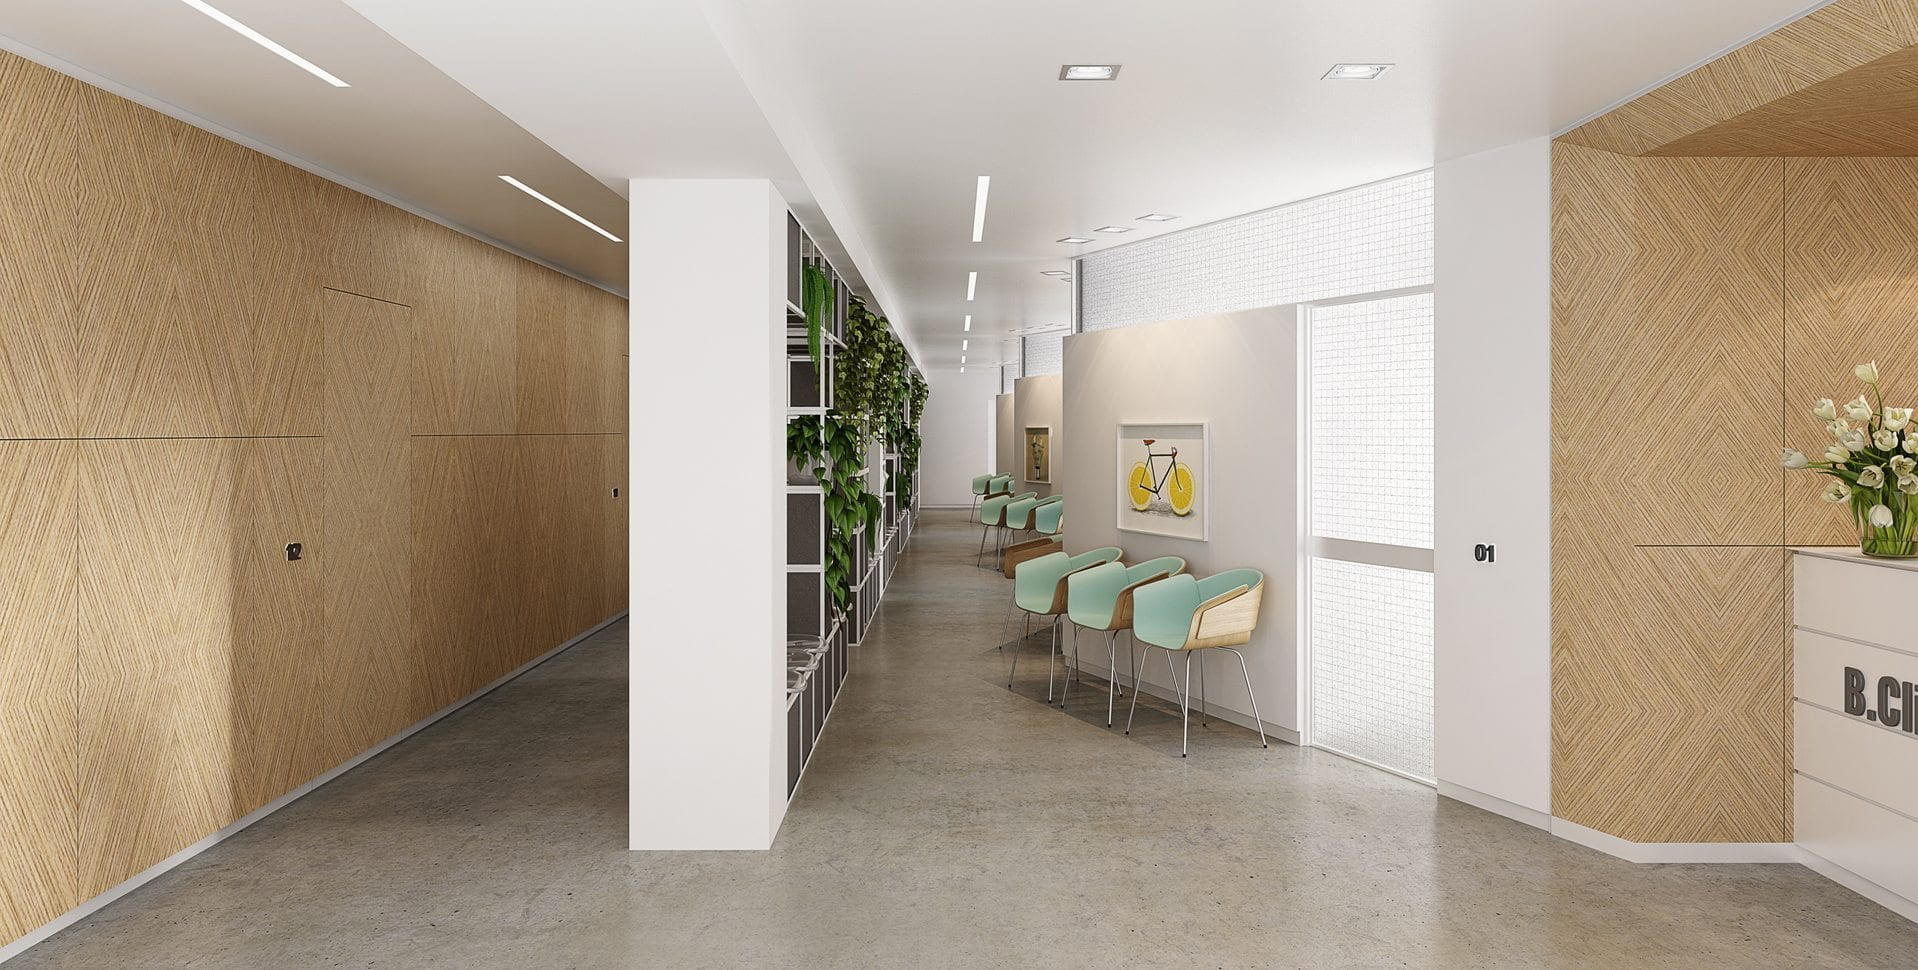 Maayan-Golan_Architectural-Visualization_ clinic-visualization_entrance_habarzel-tel-aviv_design-zarka-arch-naomi-szwec_03